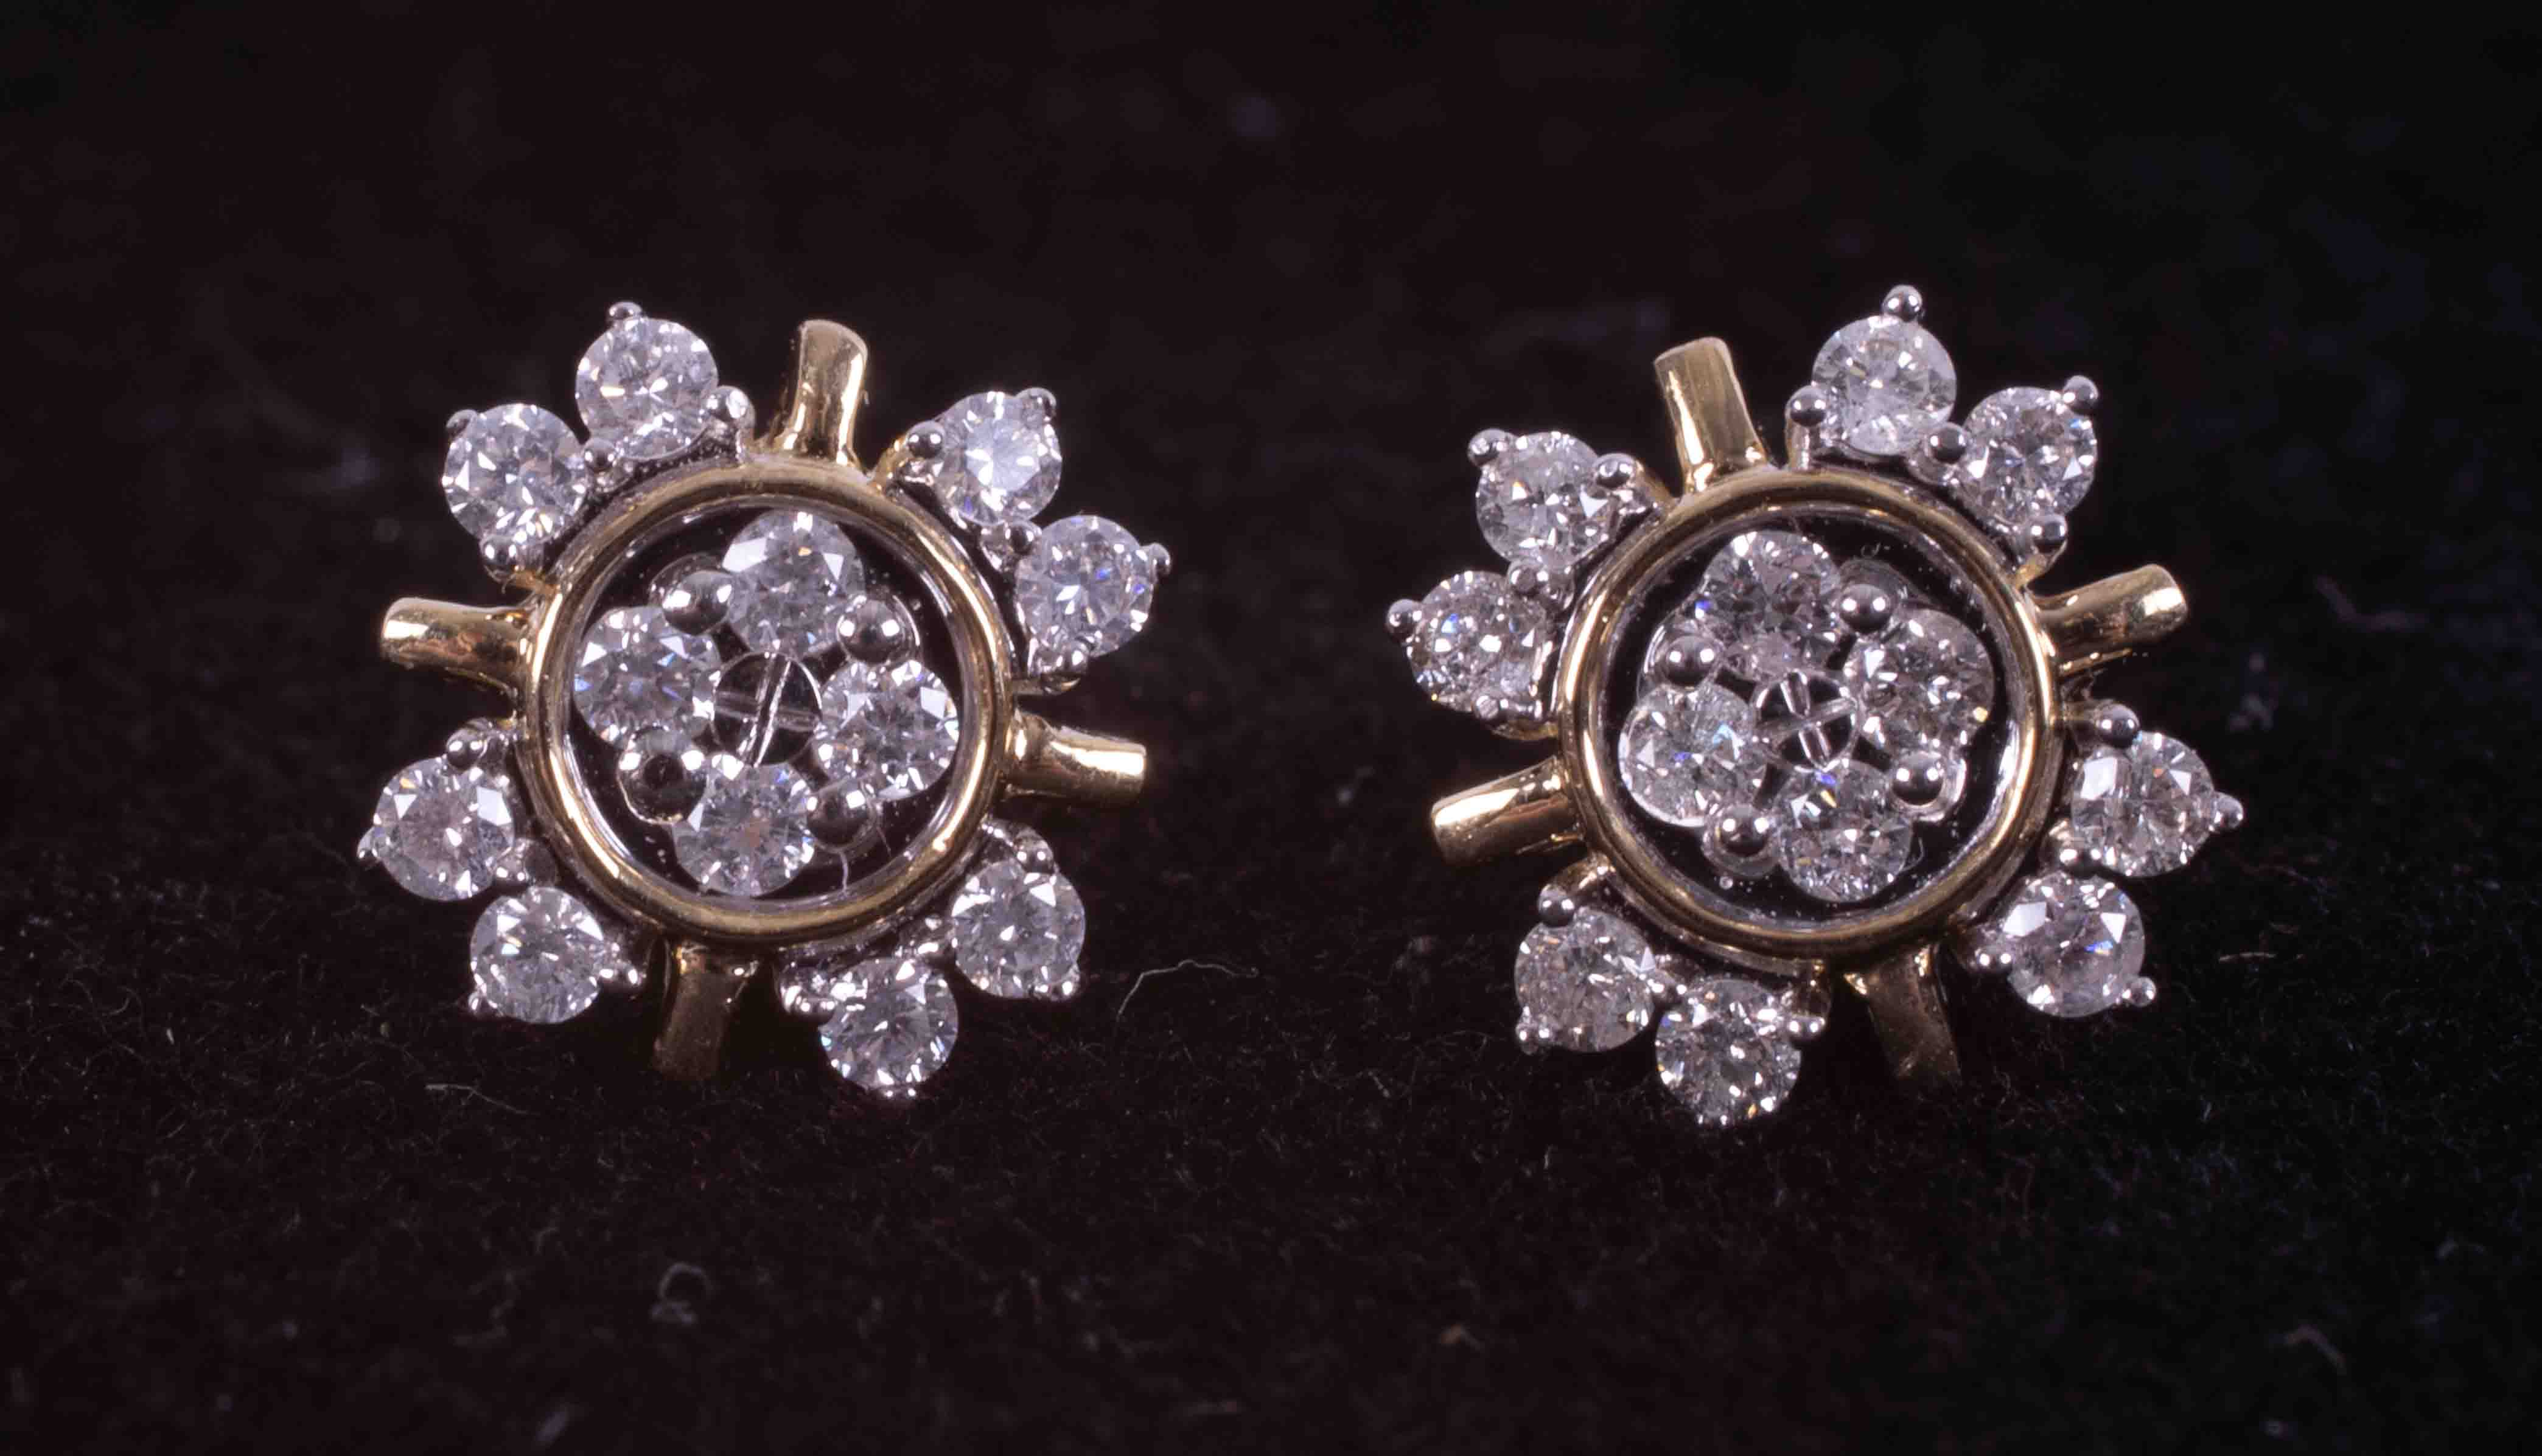 A pair of 9ct yellow gold flower design earrings set 0.34 carats (total weight) of round cut